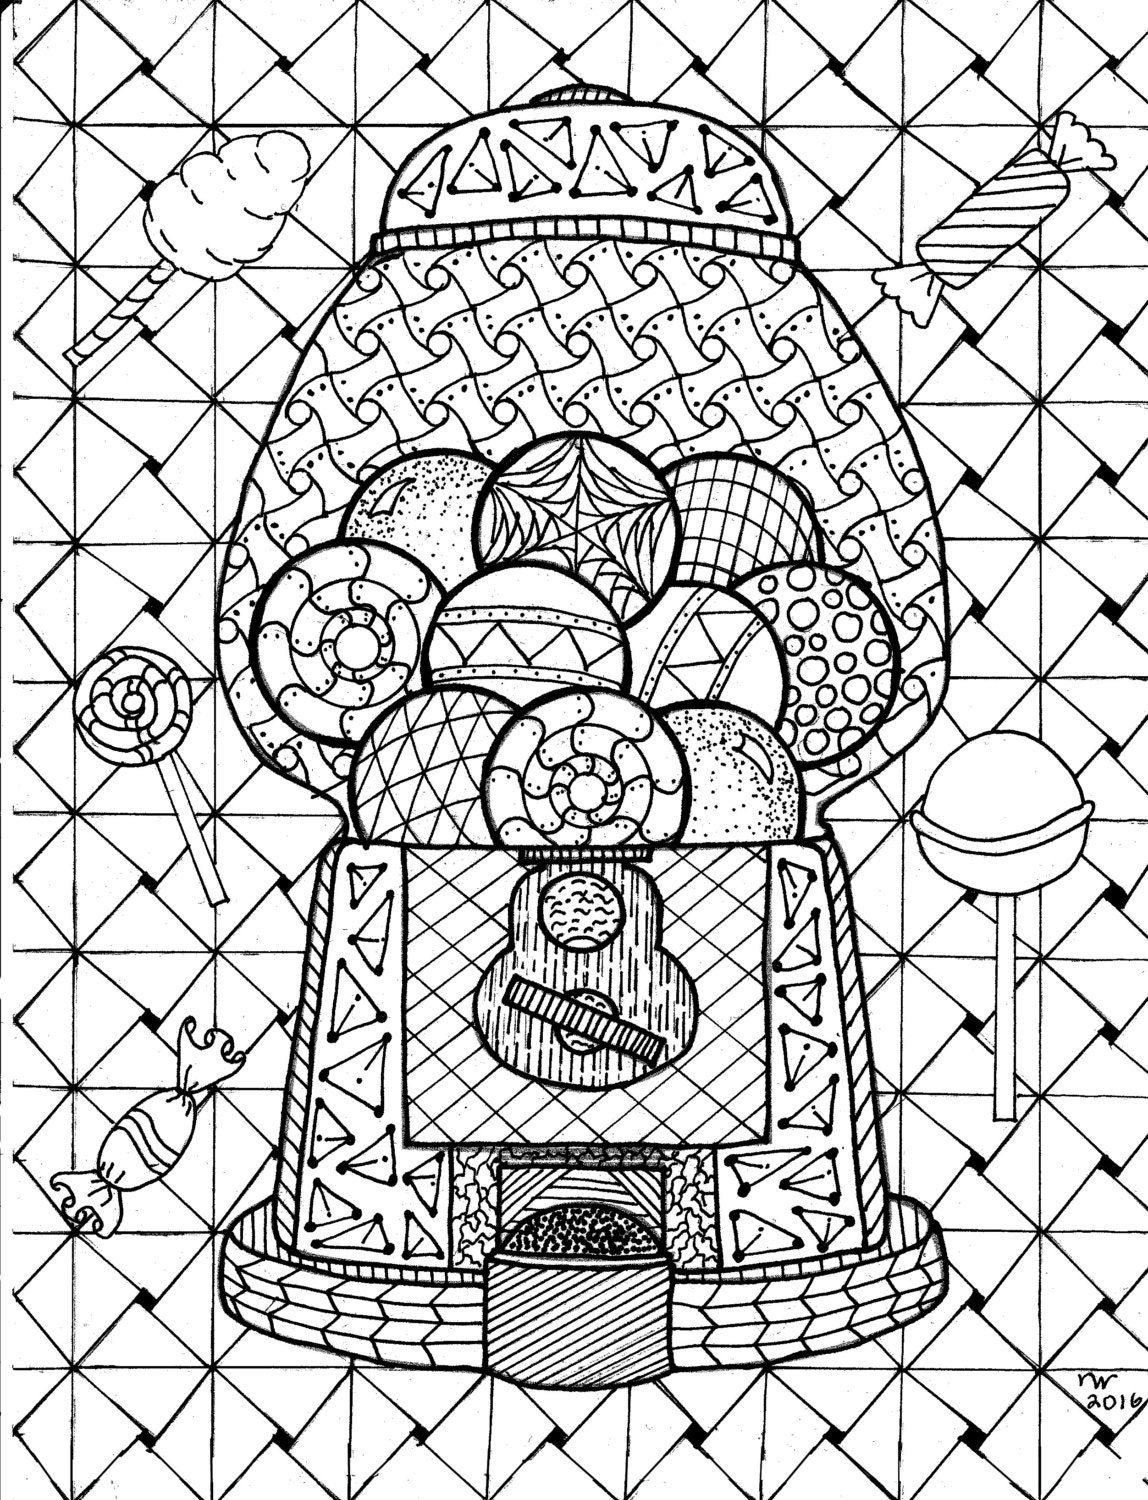 Gumball Machine Zentangle Coloring Page Digital Coloring pdf